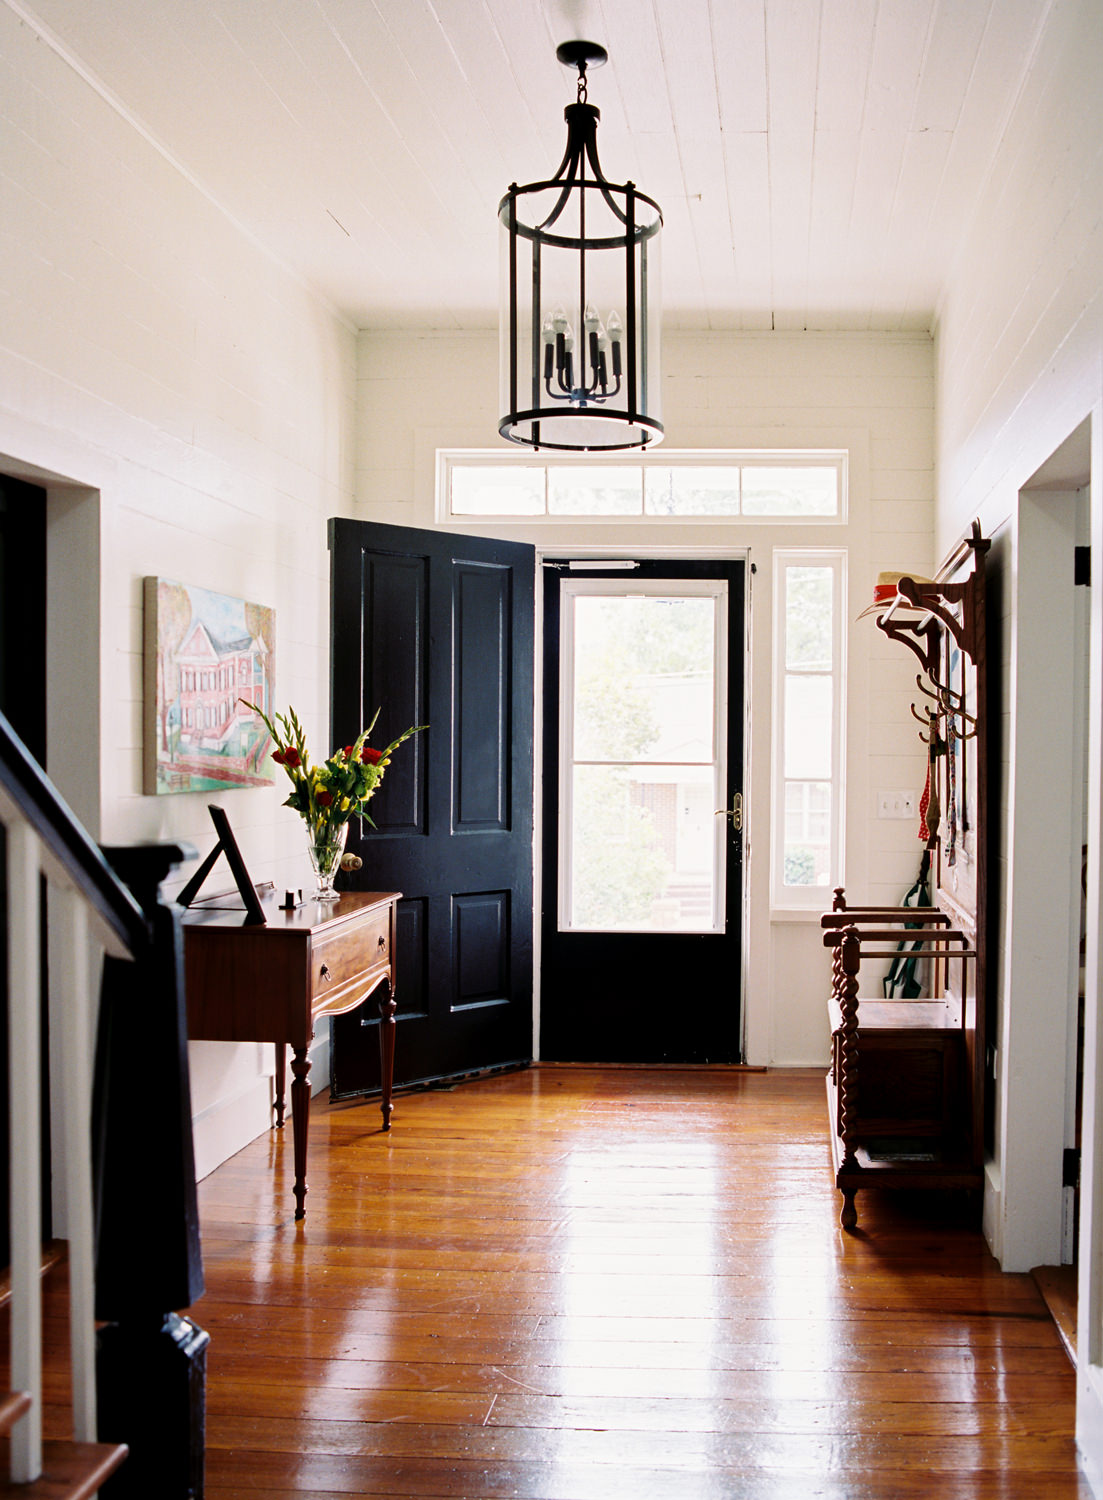 cottrell_photography_interiors-017